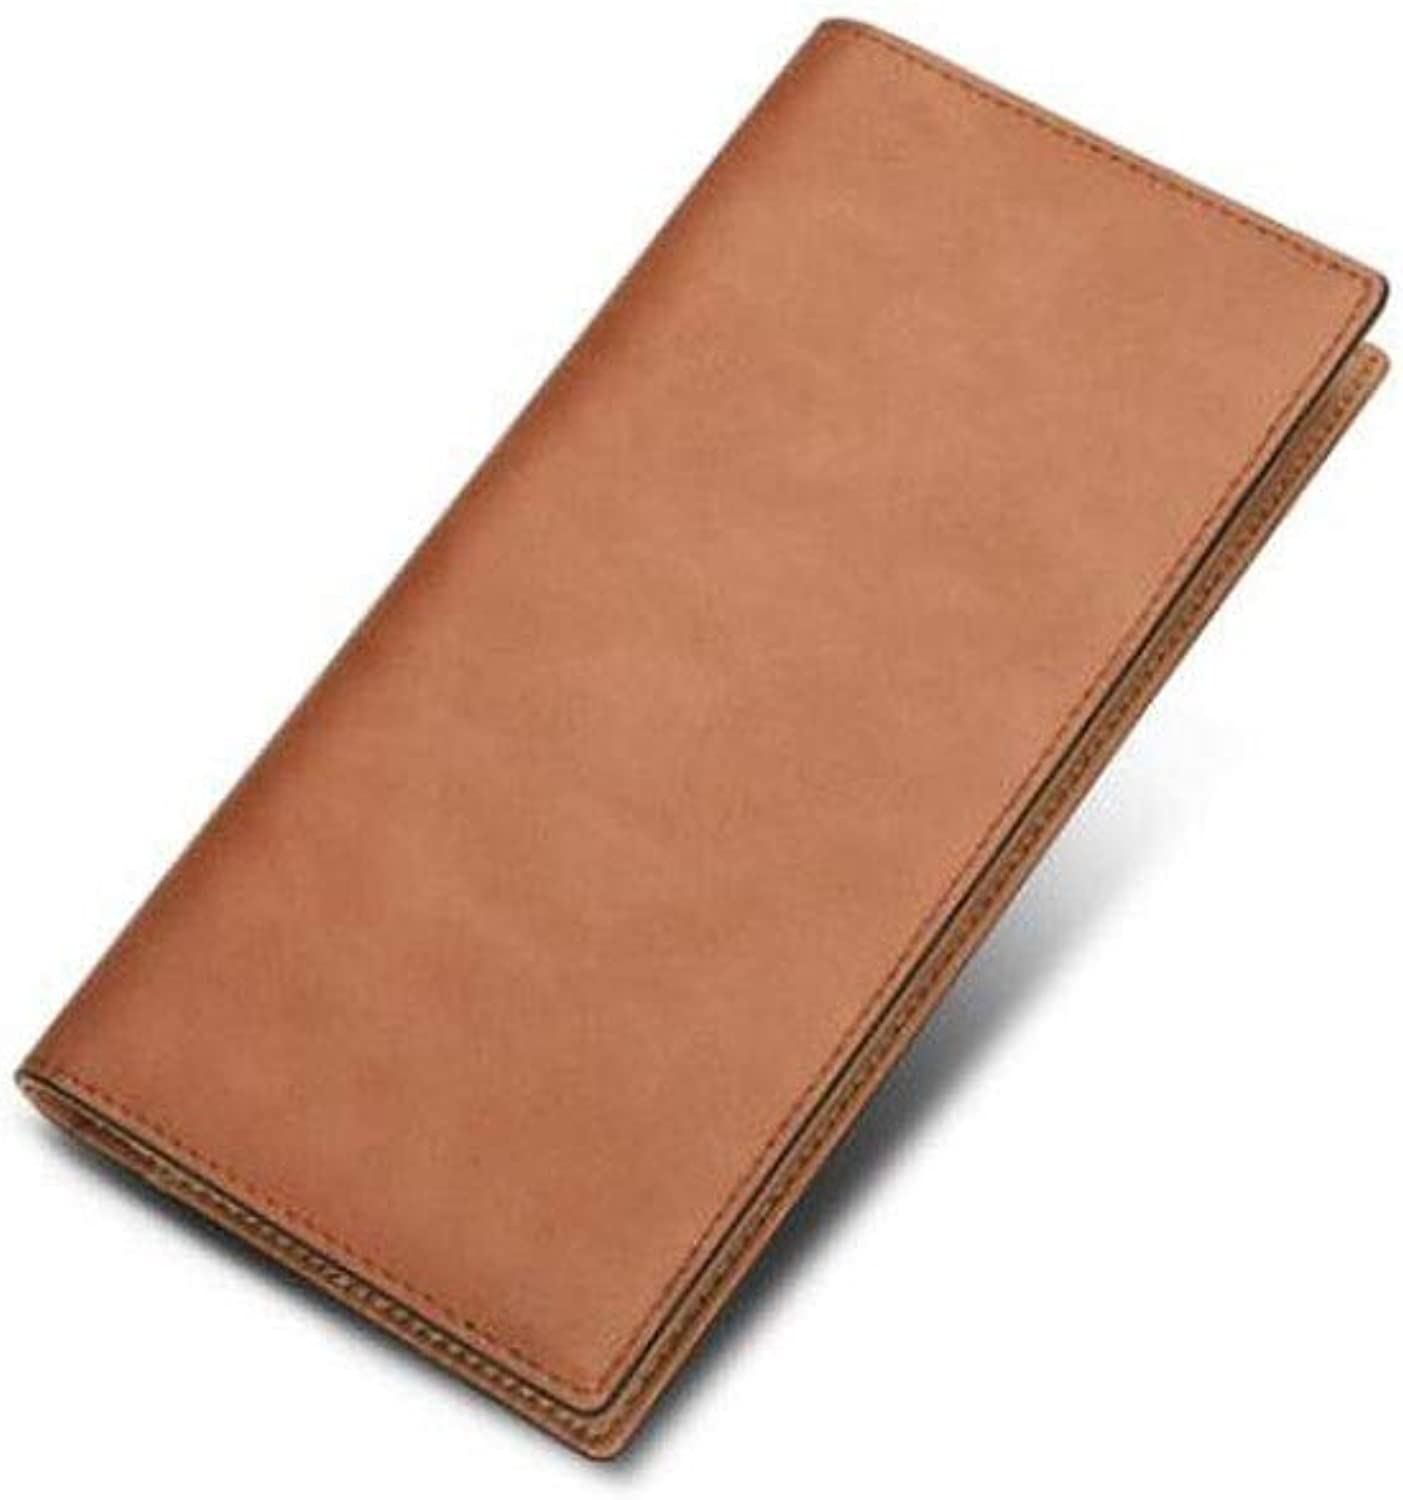 Wallet, Suitable for Men's Long, MultiCard Large Capacity Casual Fashion MultiFunctional Youth Business Leather Wallet, color, Black, Size (19  2  9.5) cm (color   Yellow Brown)